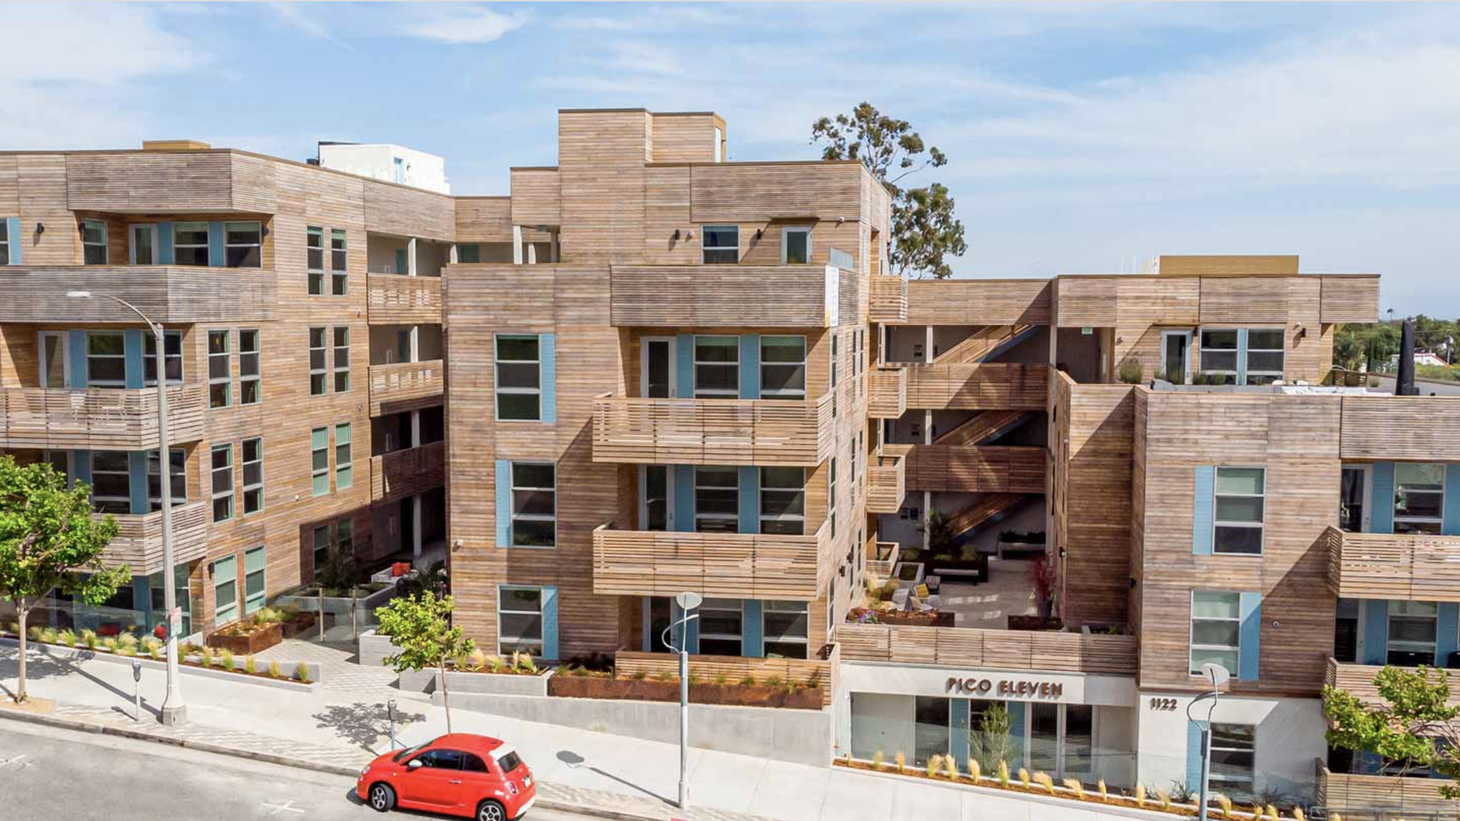 Some new housing designs might include balconies, more green space, and more open space. Pico Eleven apartments in Santa Monica, completed in 2018, is an example of housing with lots of open space.